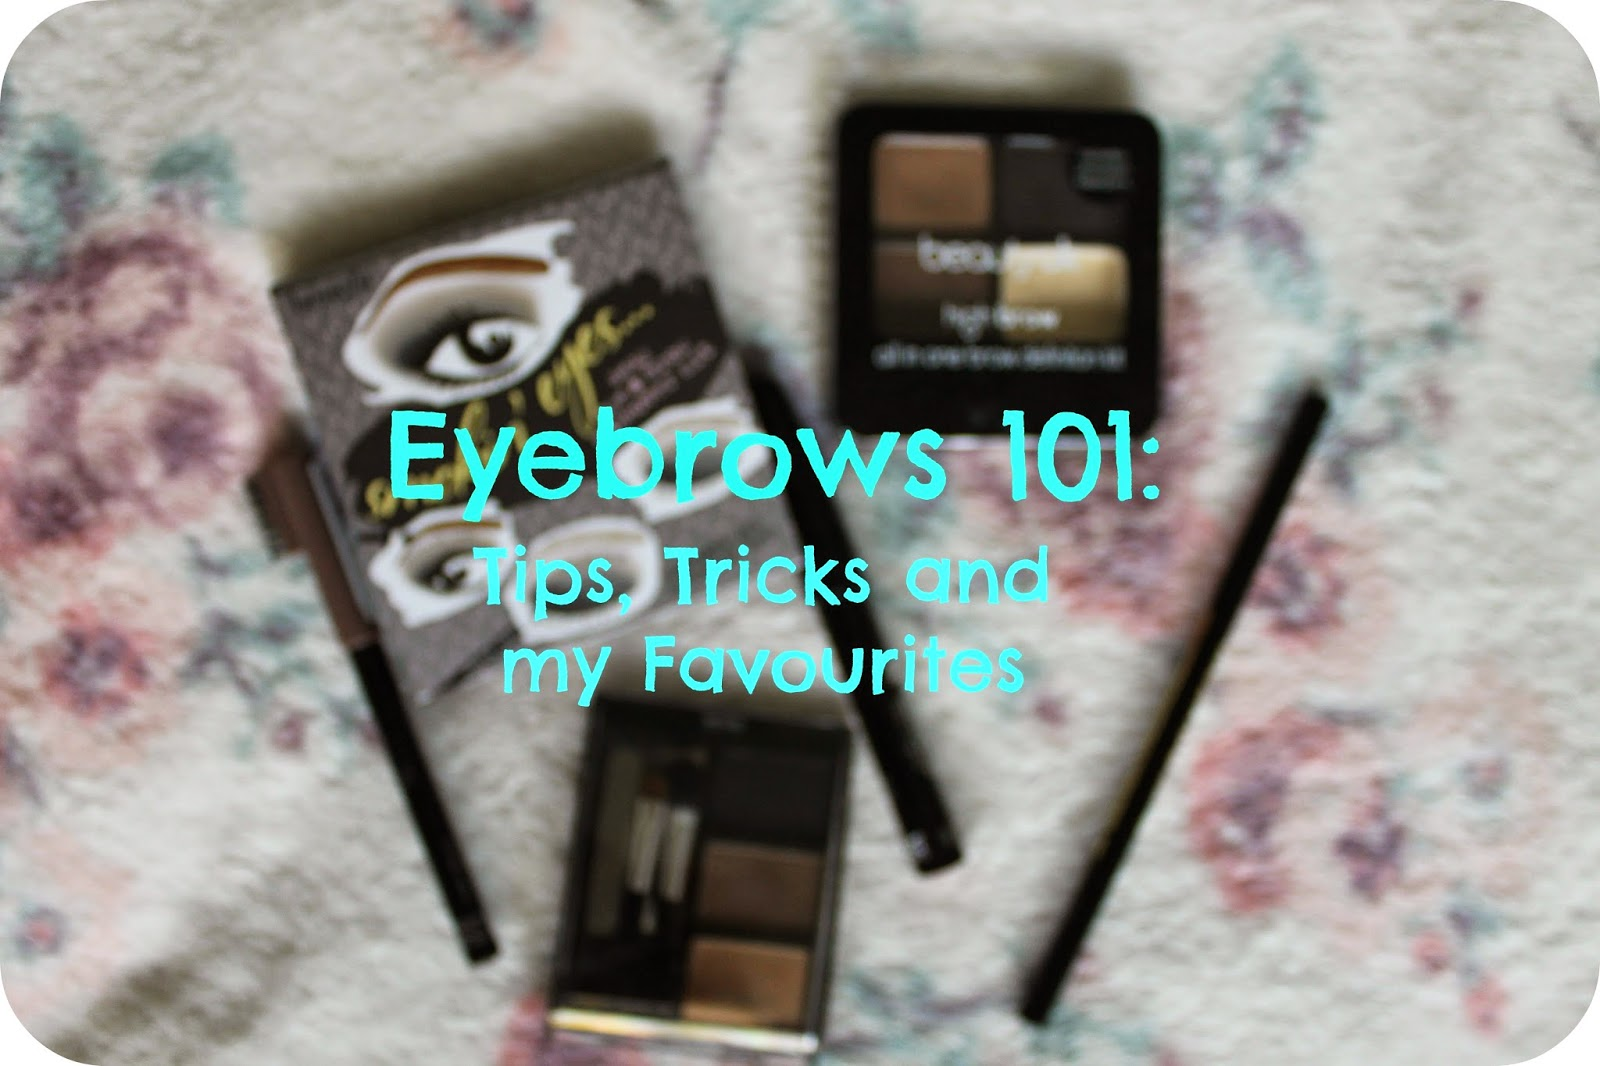 Eyebrows 101: Tips, Tricks and my Favourites